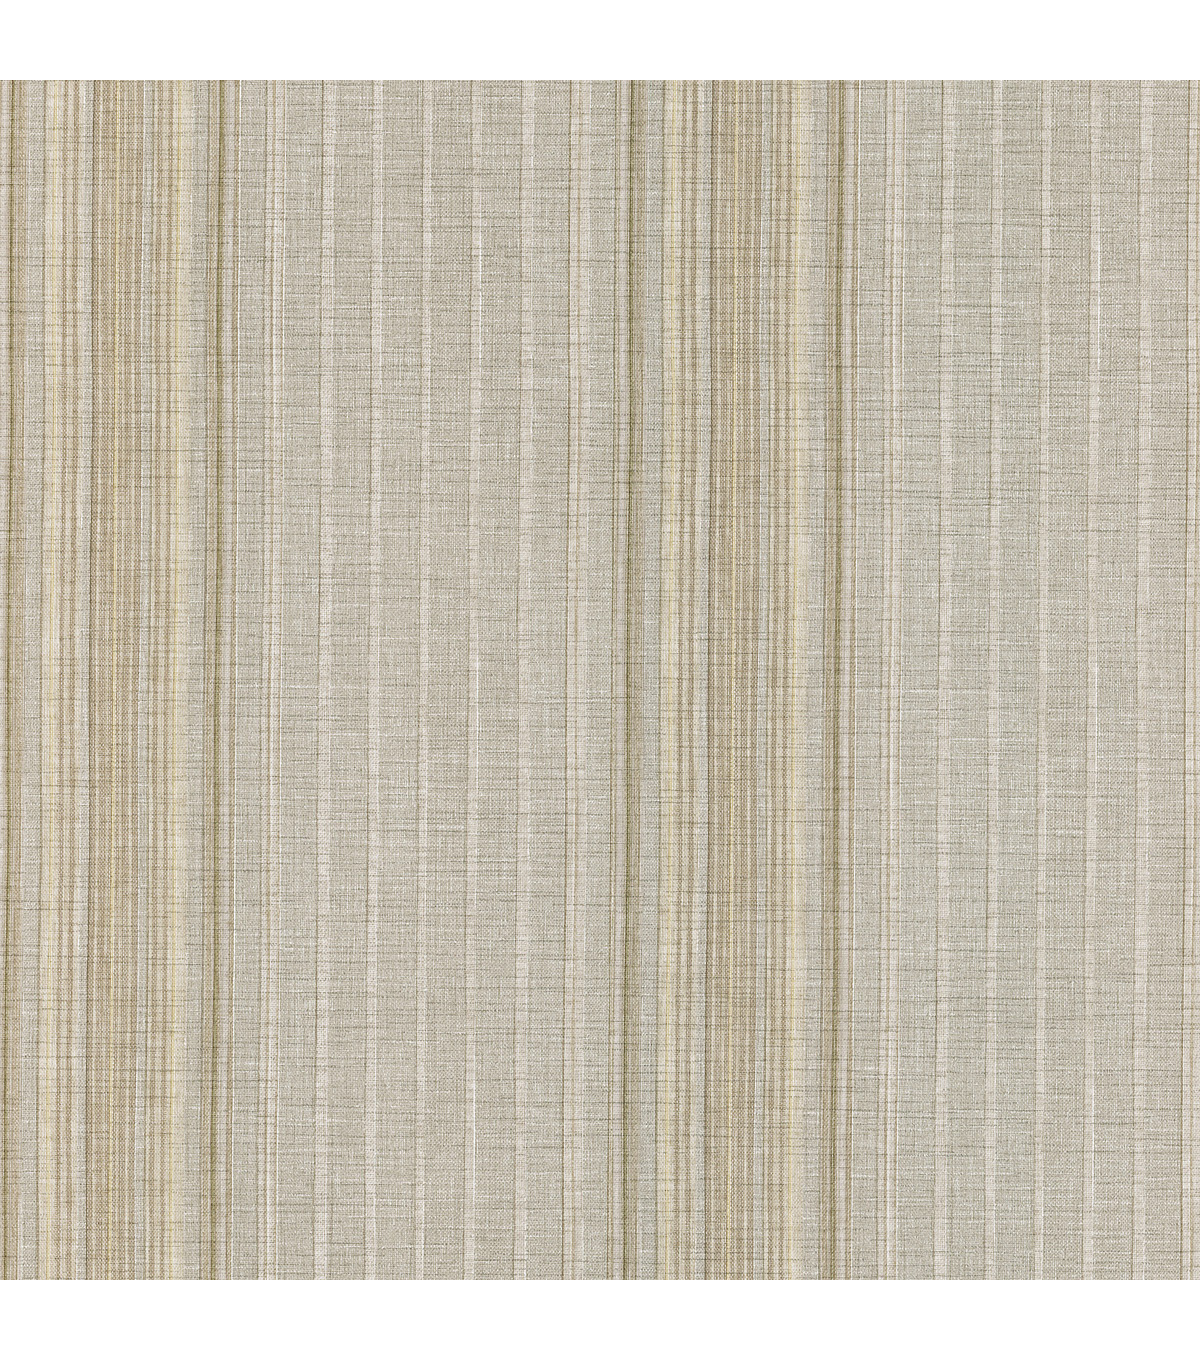 Natuche Grey Linen Stripe Wallpaper Sample